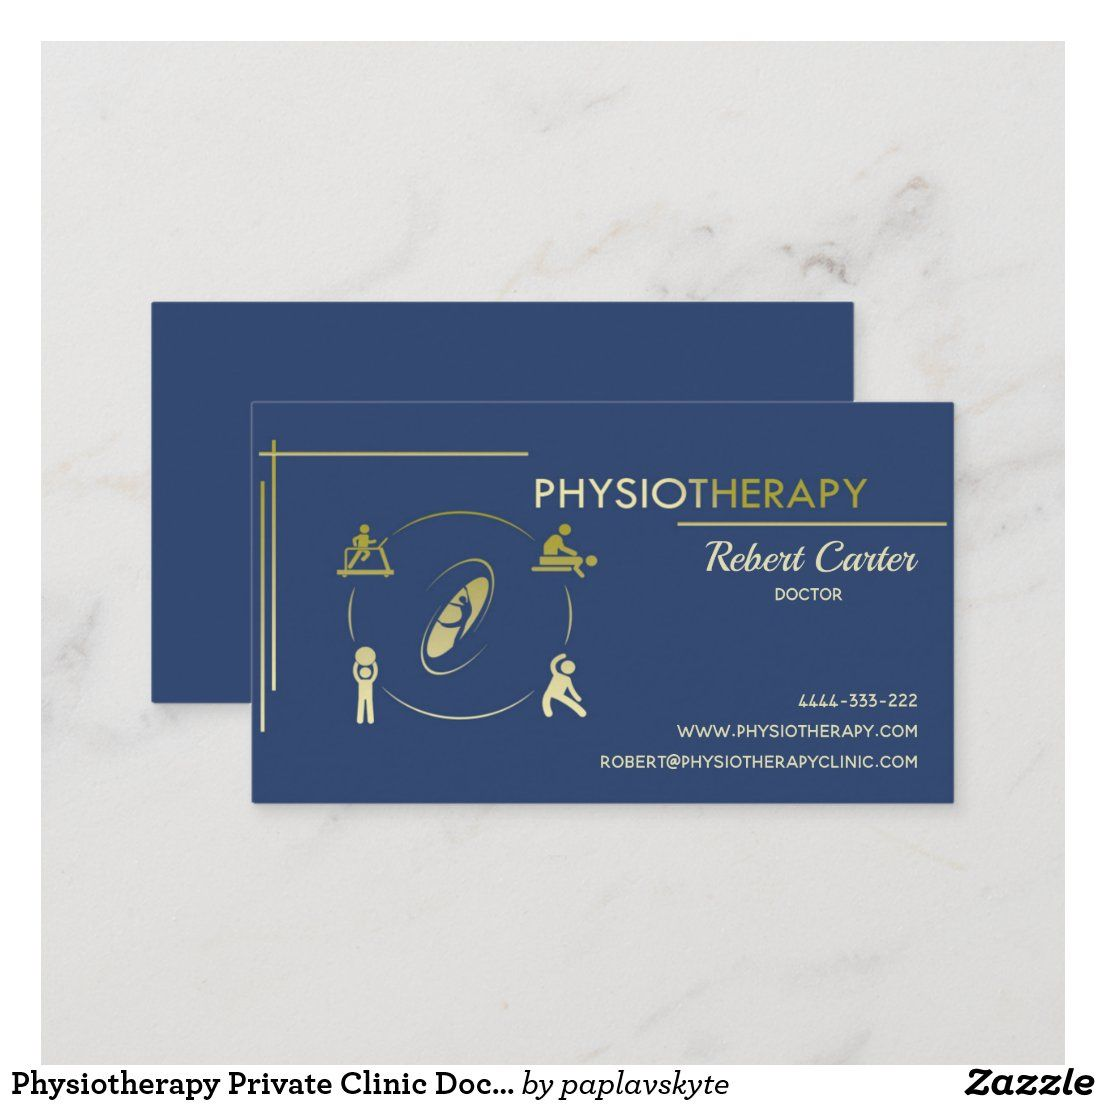 Physiotherapy Private Clinic Doctor Physiotherpist Business Card Zazzle Com In 2021 Business Card Inspiration Visiting Card Design Visiting Cards